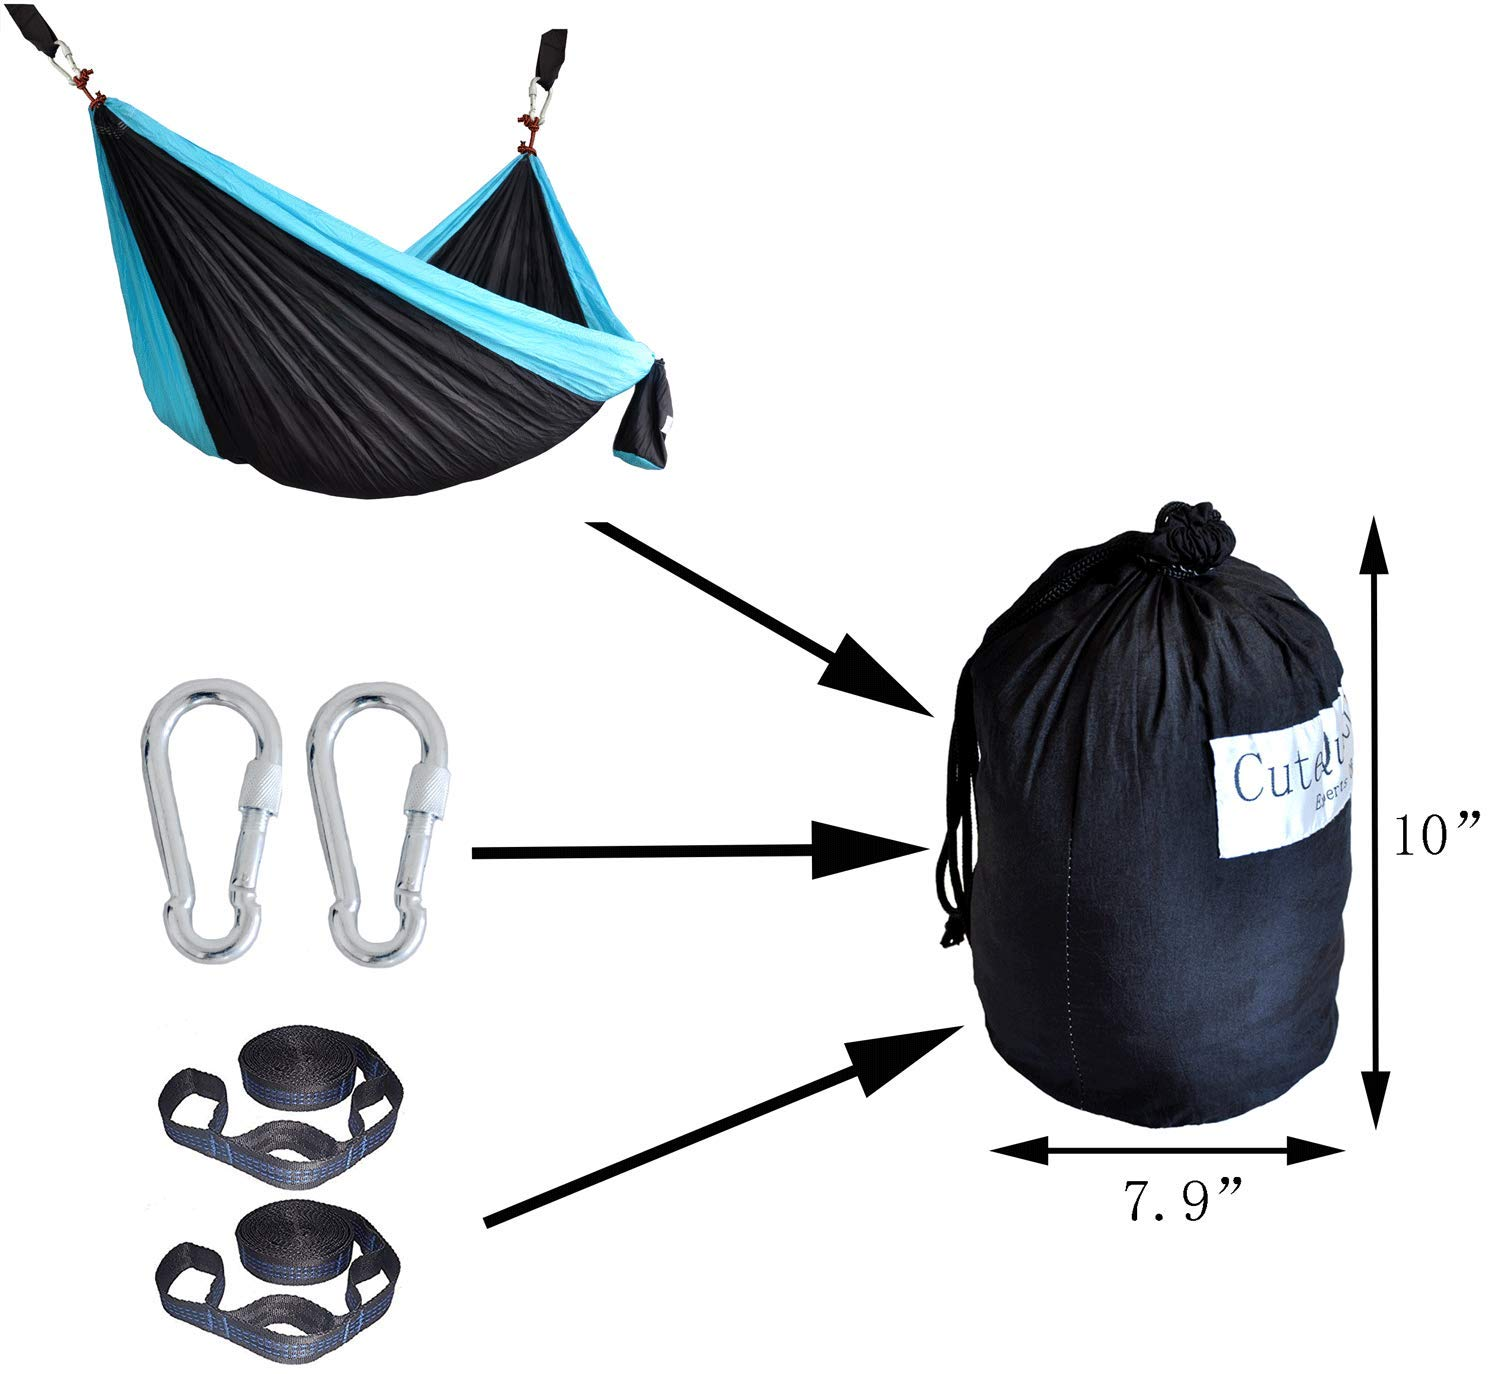 Cutequeen Double Nest Nylon Fabric Hammock with Multi Loops Tree Straps Black Sky Blue